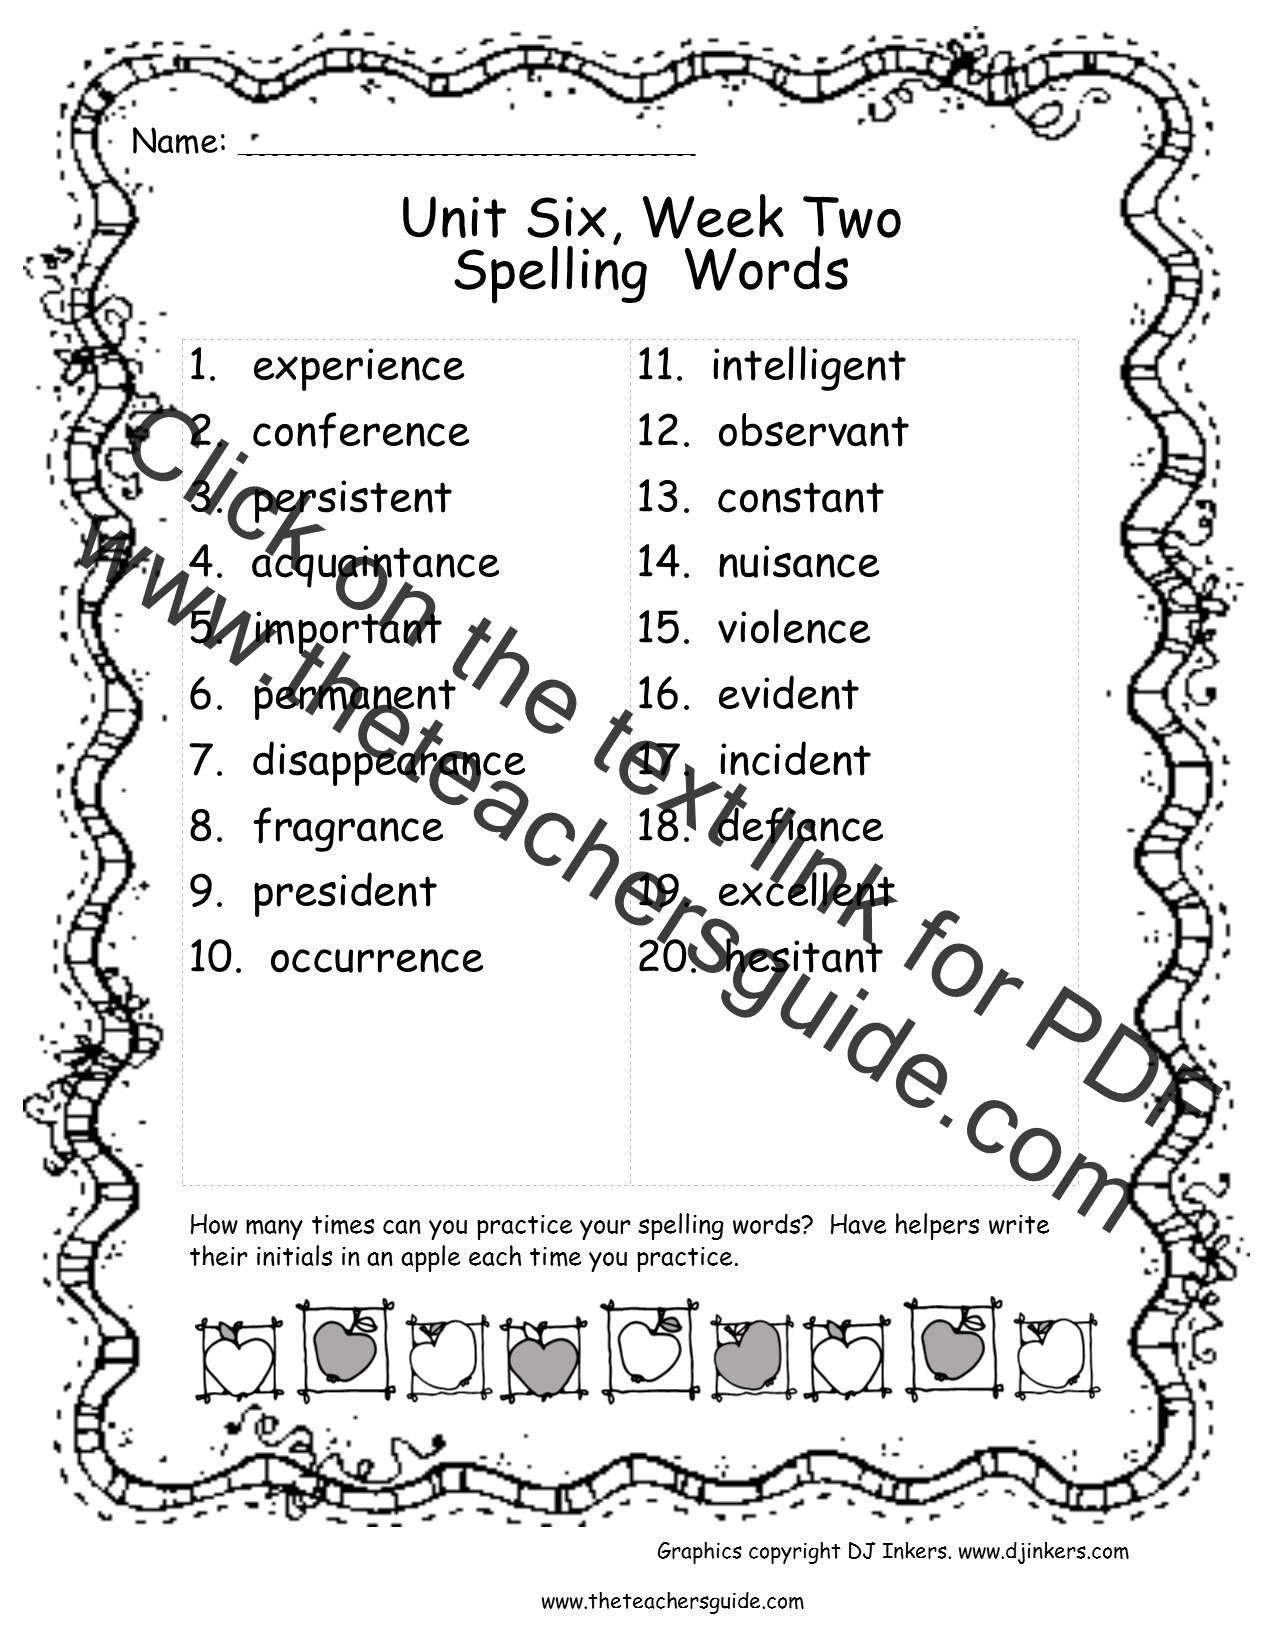 Original together with Homeschool Math Worksheet Line Symmetry Template Cc Fine Arts Worksheets Order Of Operations Ad B Aae D A Nd Grade Answer Key Measuring Units Th Th Th Pdf Th Th X in addition Original in addition Math Percent Worksheets Find Percentages Ans besides Types Of Maps Worksheets Worksheet Political Countries Map Metro Unit A Pdf. on 6th grade math worksheets